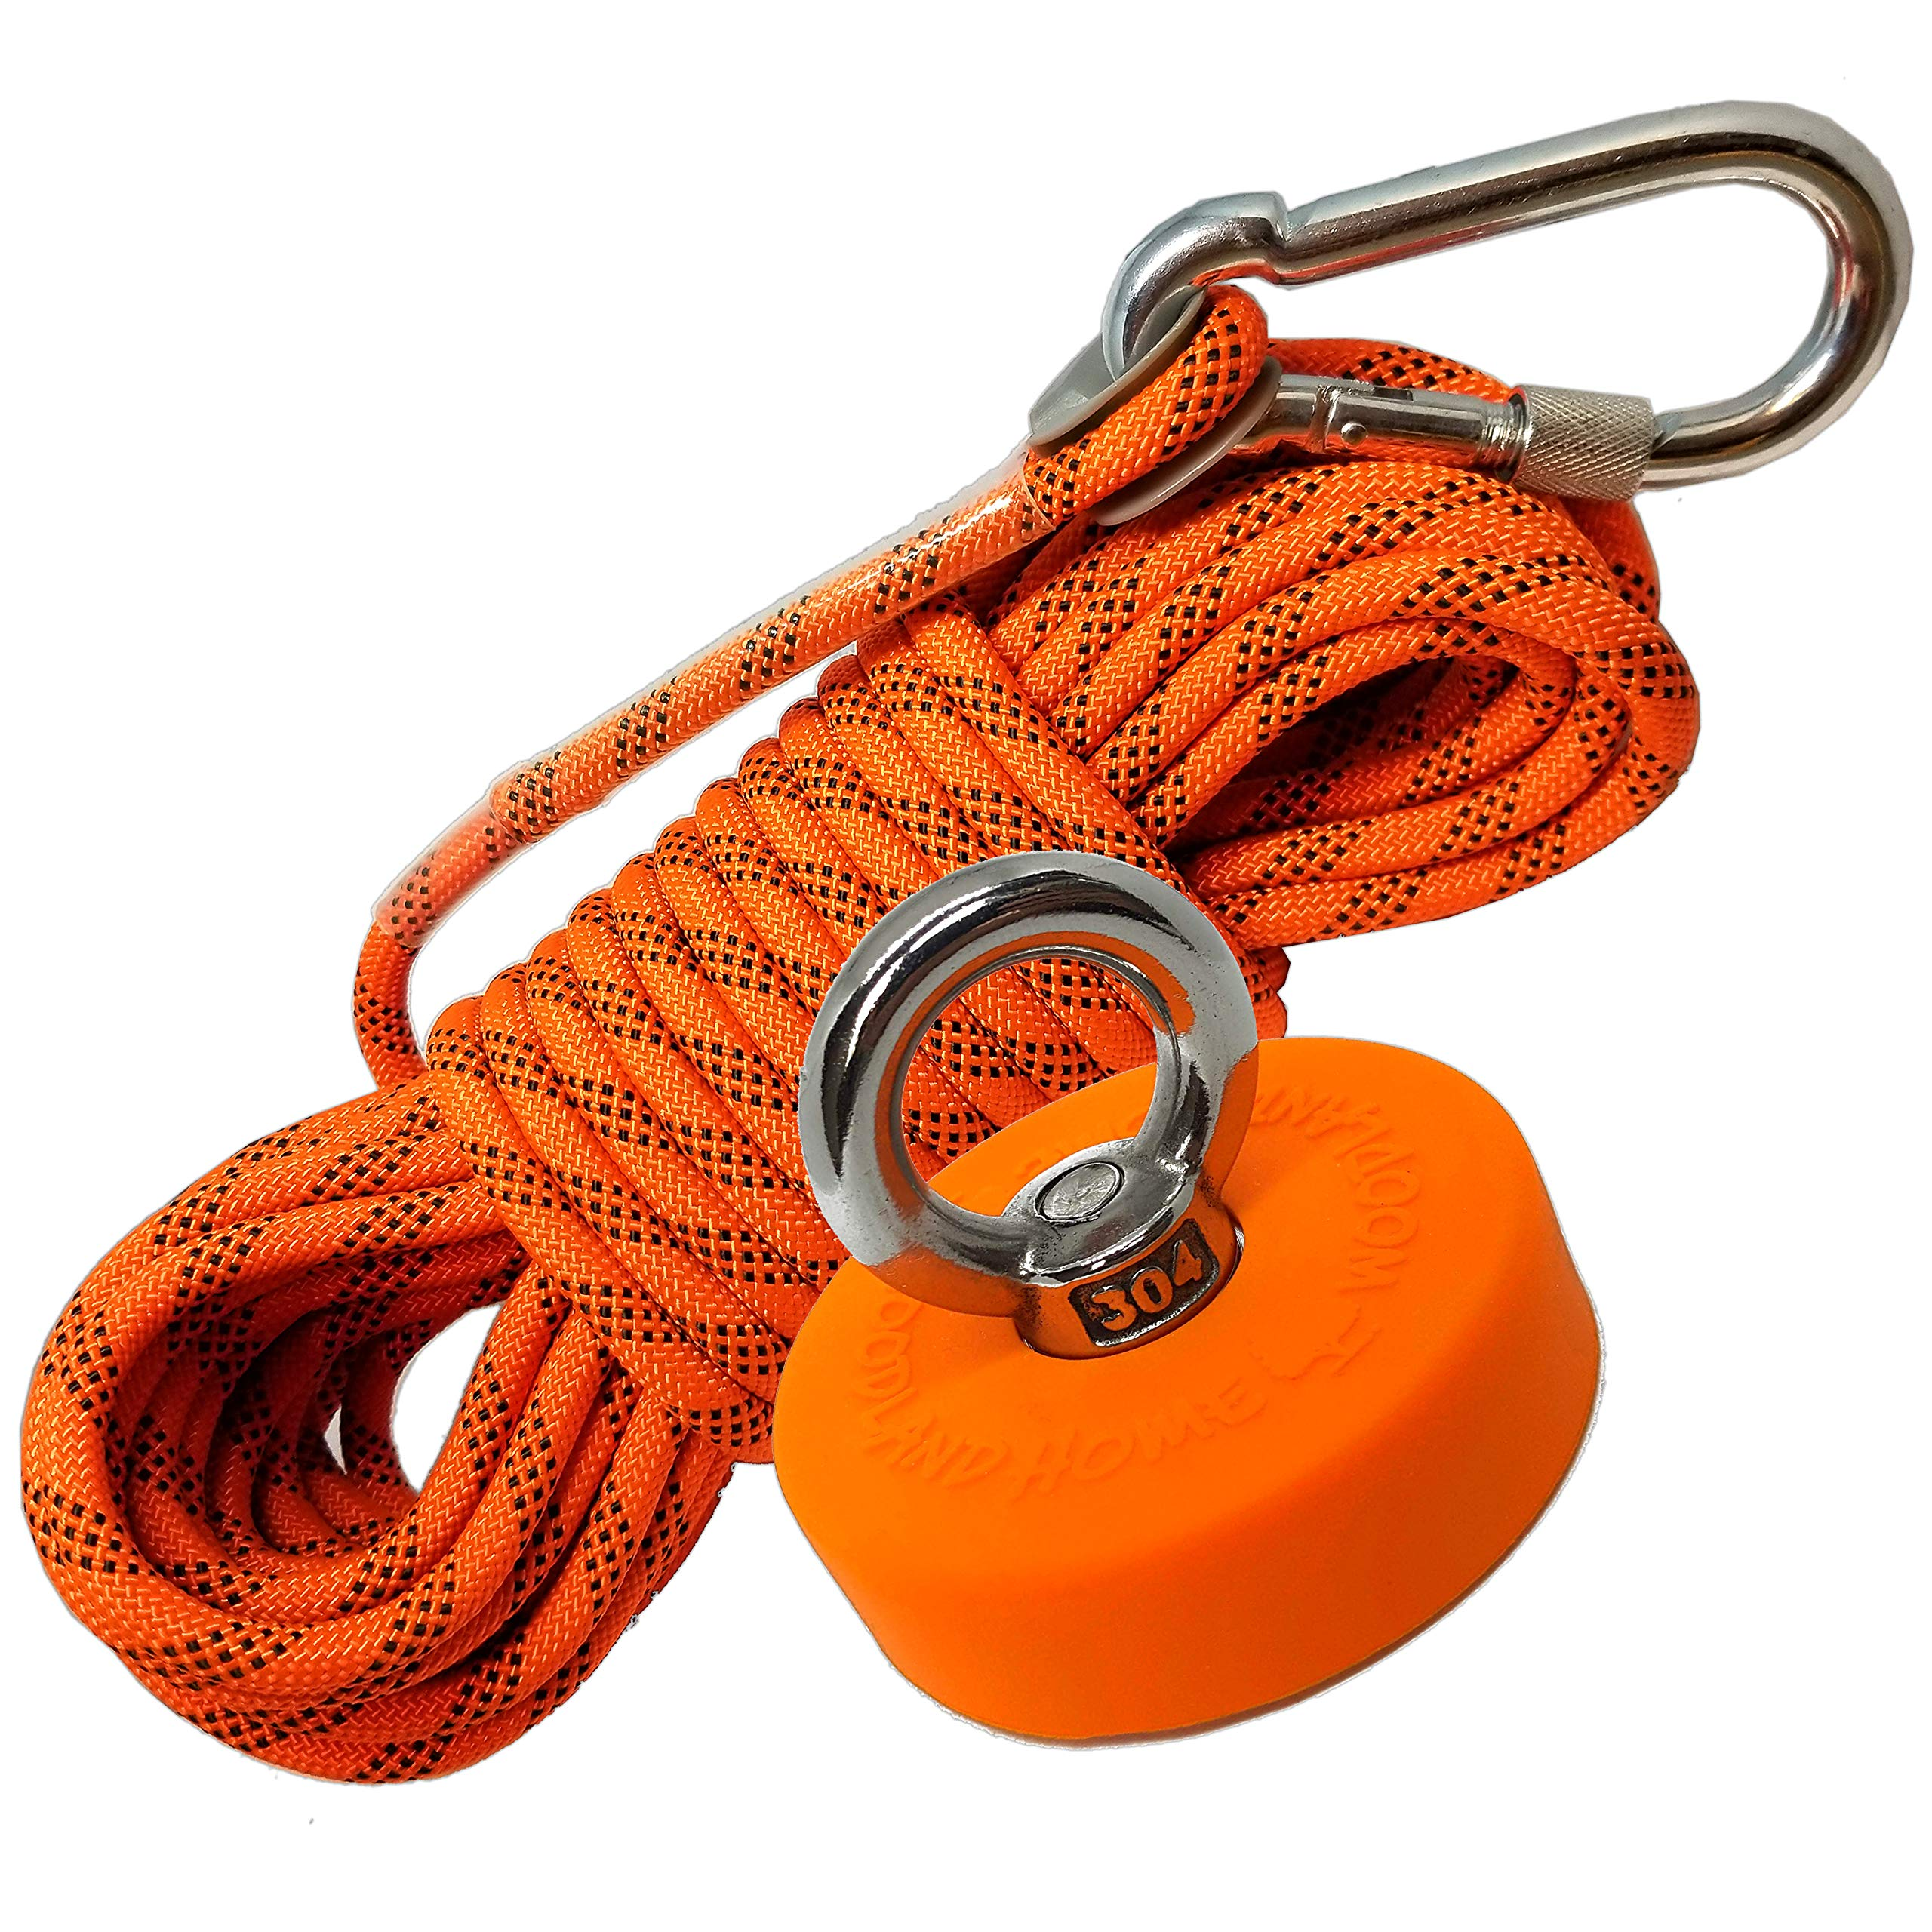 Super Strong Deluxe Fishing Magnet 330 LB & Rope Kit | Rope Over 2000 LB | Magnet 330lbs Pull Force(150KG) | Durable Orange Rubber | Neodymium Rare Earth Magnet | 2.36 inch(60 mm) for Magnet Fishing